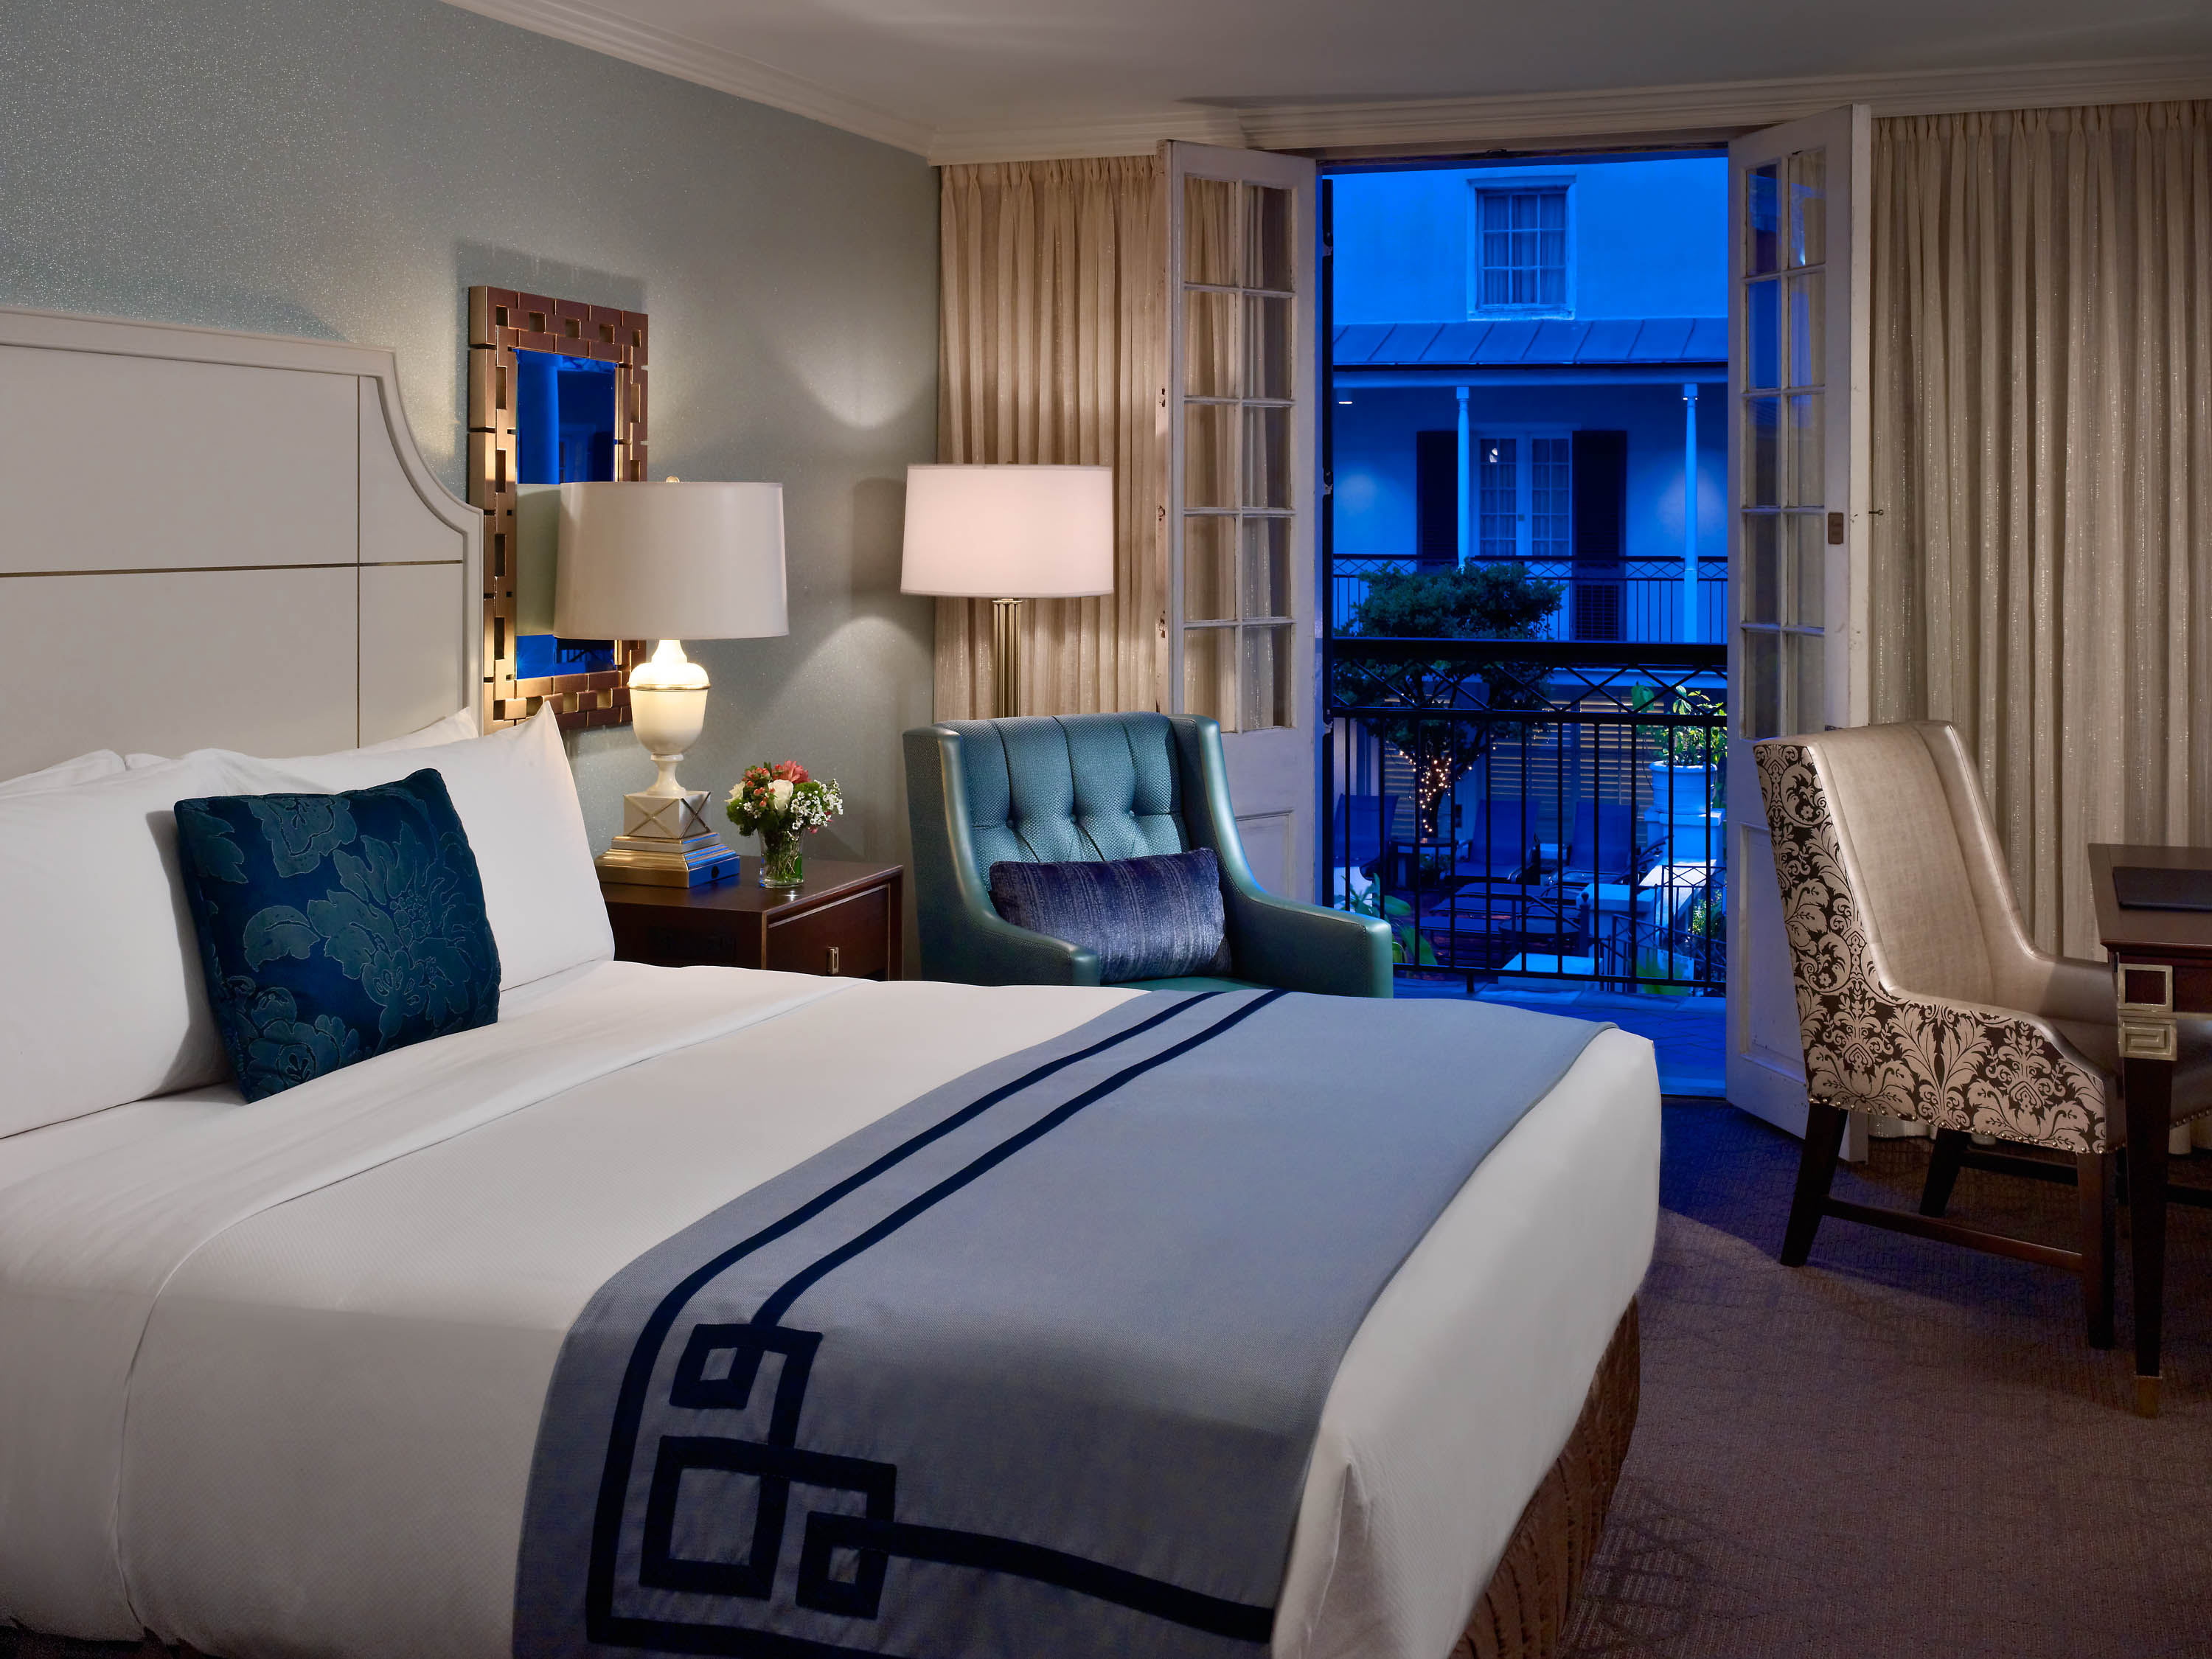 rooms hor and hotel room suite marriott double accommodations new jw french orleans msyjw hotels guest clsc quarter